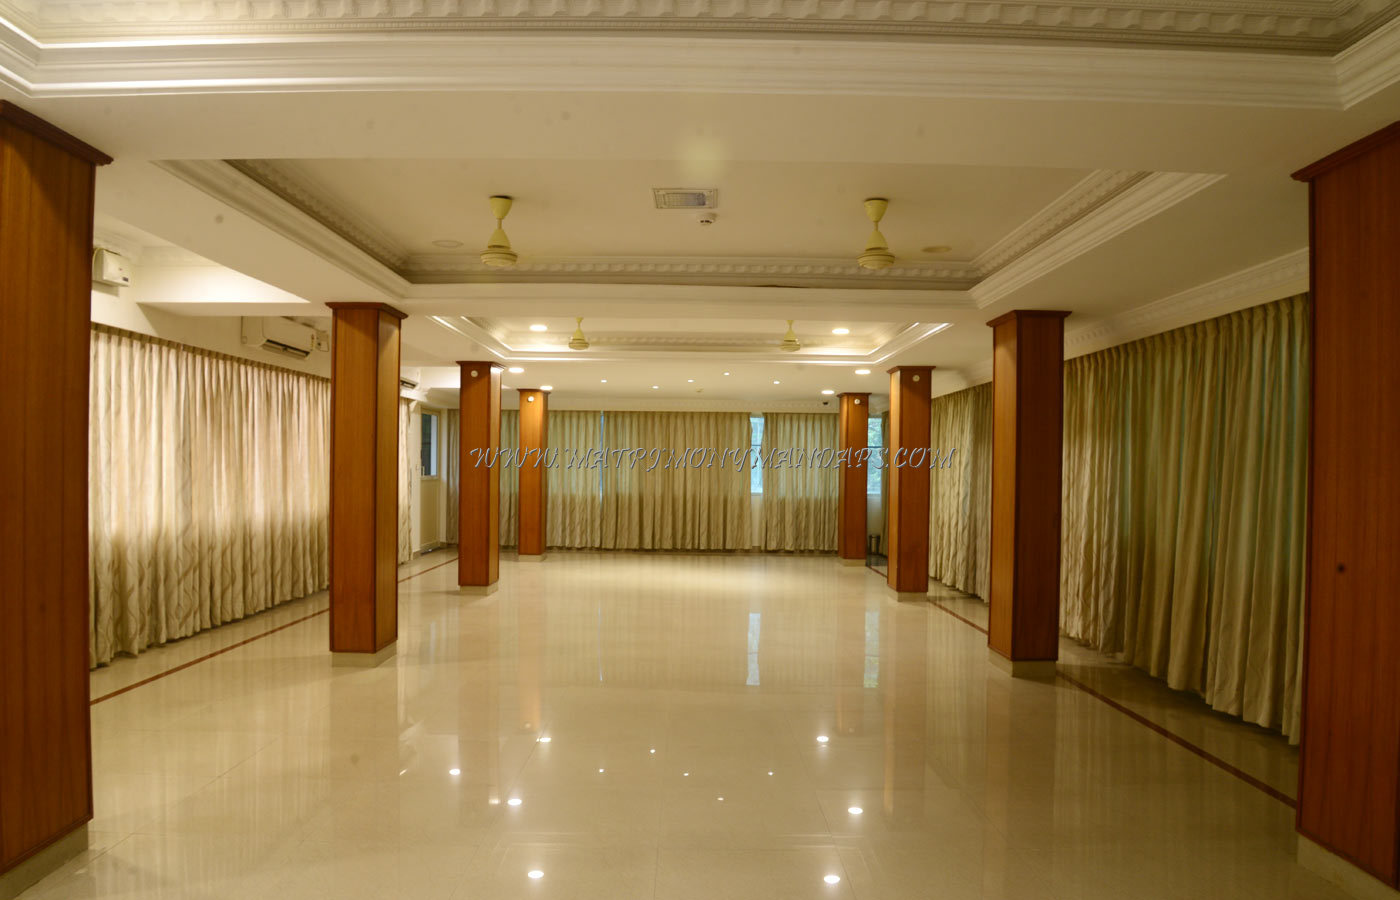 Find the availability of the Hotel Asliyya Grande The Platinum Lounge (A/C) in Attingal, Trivandrum and avail special offers